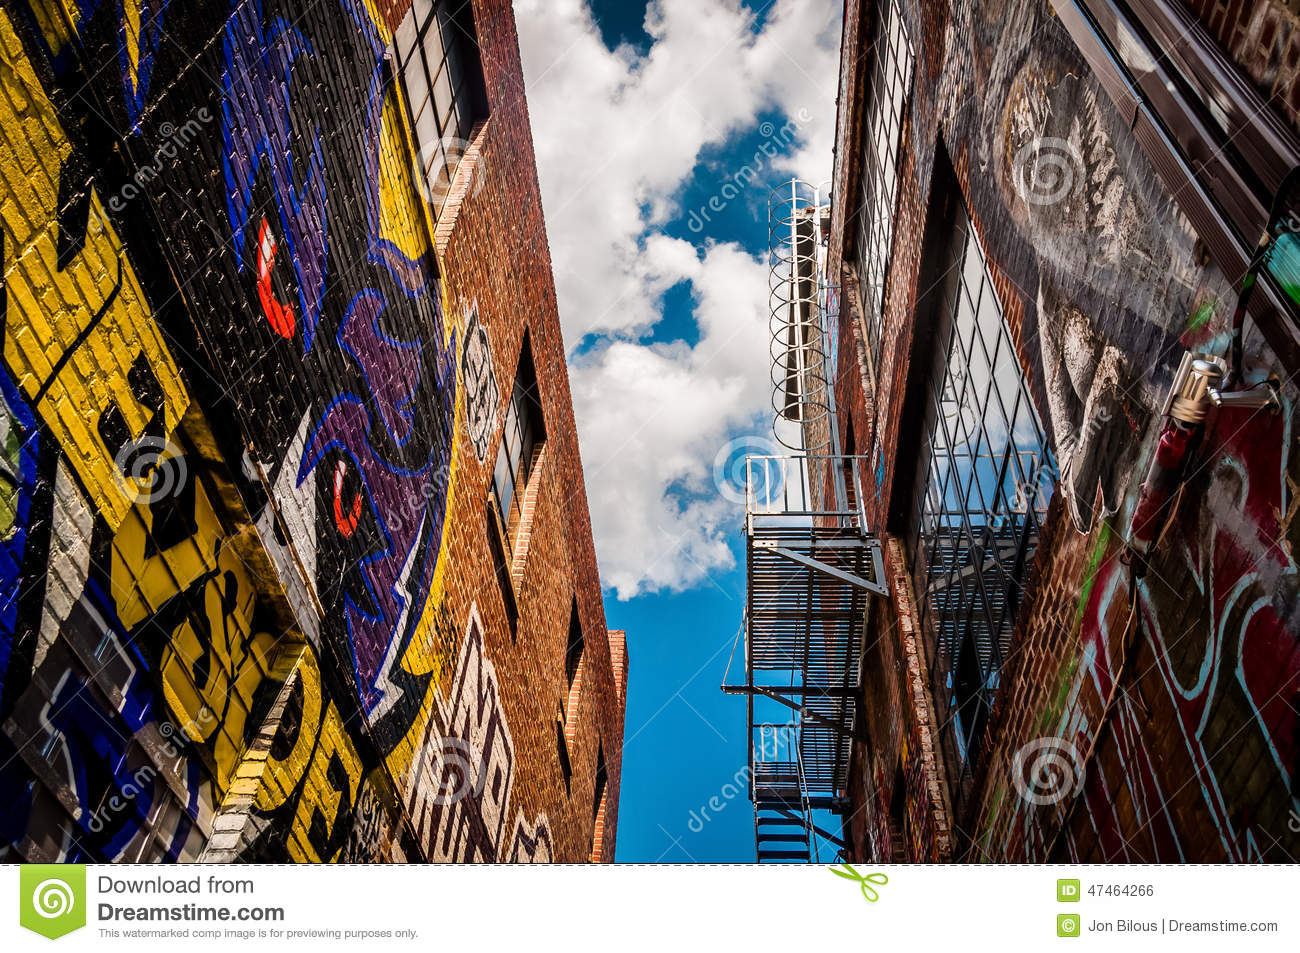 Graffiti wall baltimore - Walls Of Old Buildings In Graffiti Alley Baltimore Maryland Royalty Free Stock Image